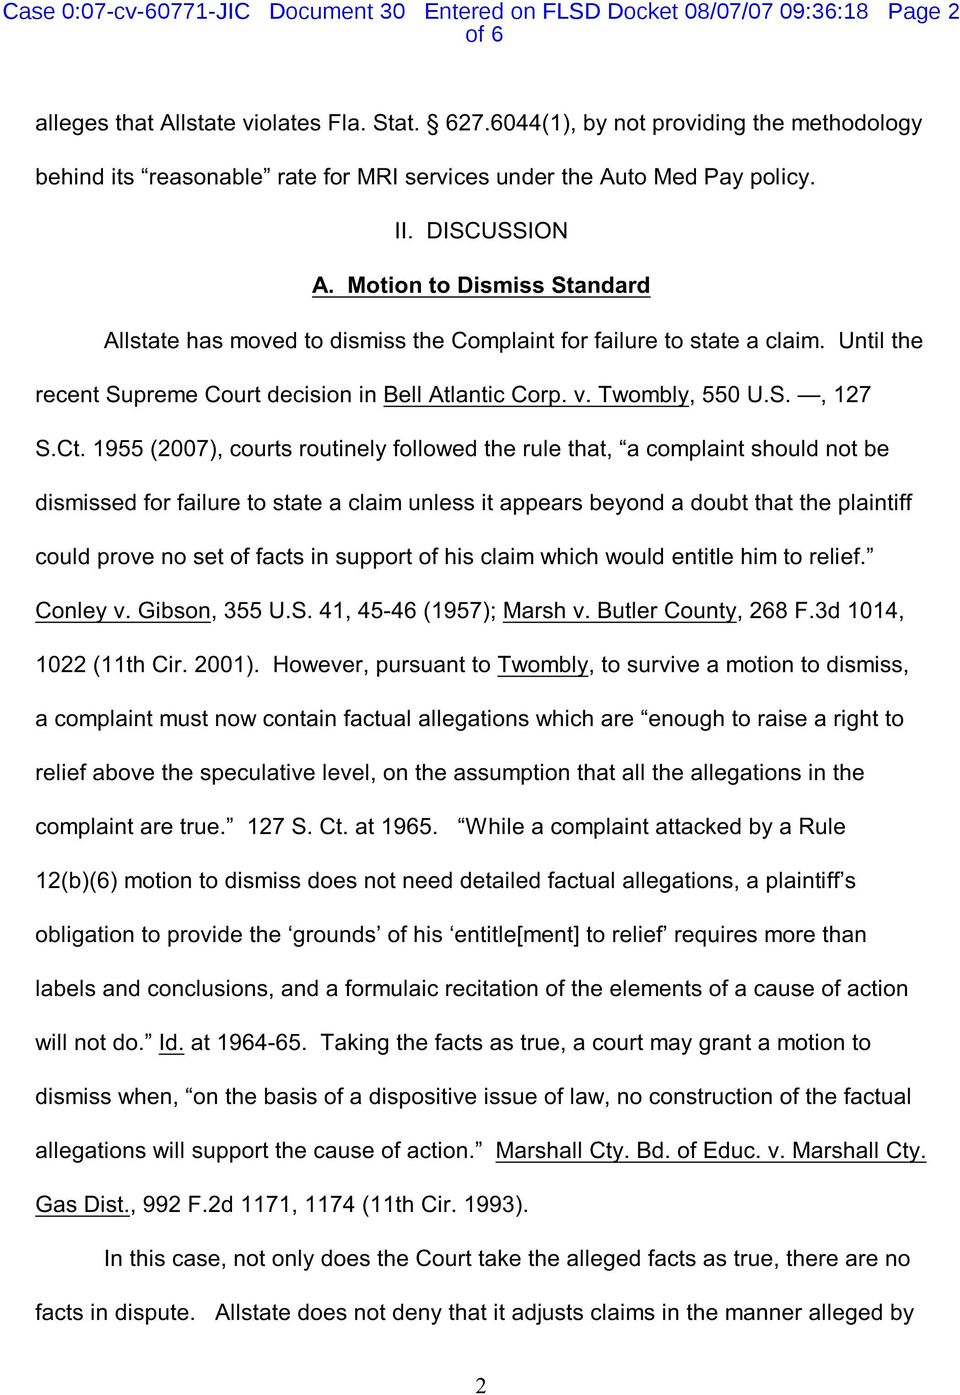 Motion to Dismiss Standard Allstate has moved to dismiss the Complaint for failure to state a claim. Until the recent Supreme Court decision in Bell Atlantic Corp. v. Twombly, 550 U.S., 127 S.Ct.